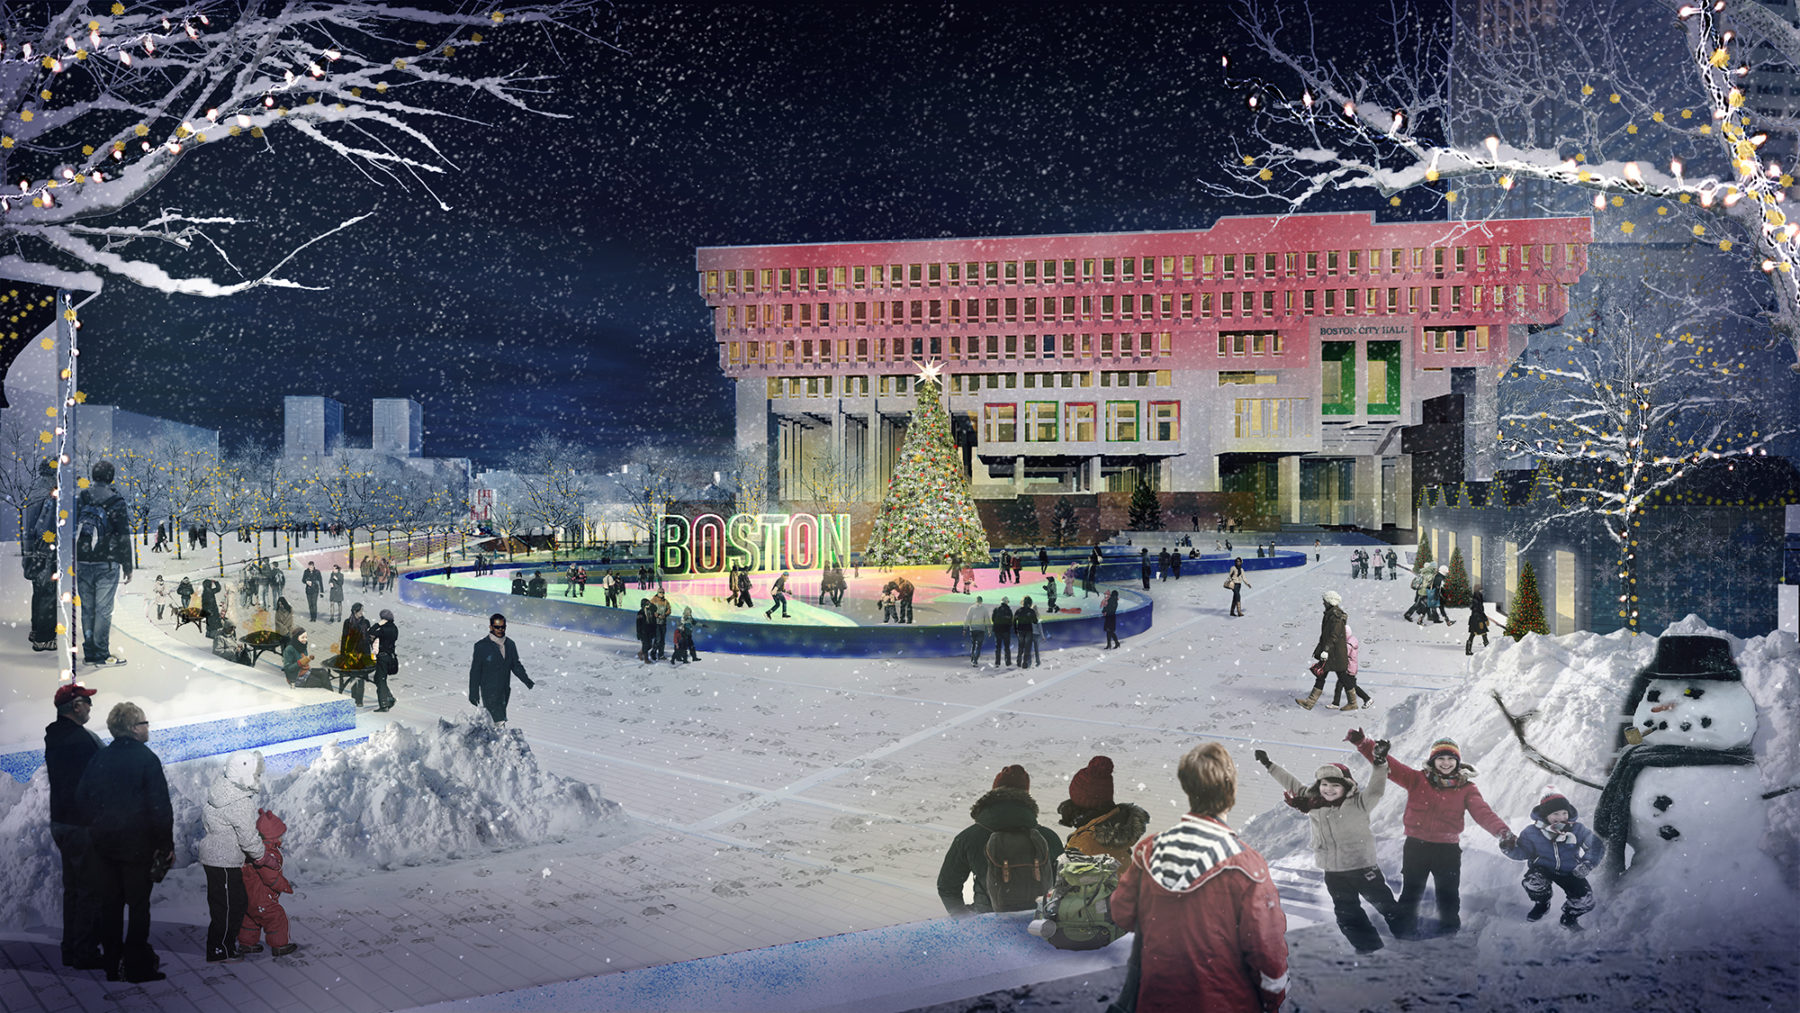 rendering of people ice skating in the plaza in winter